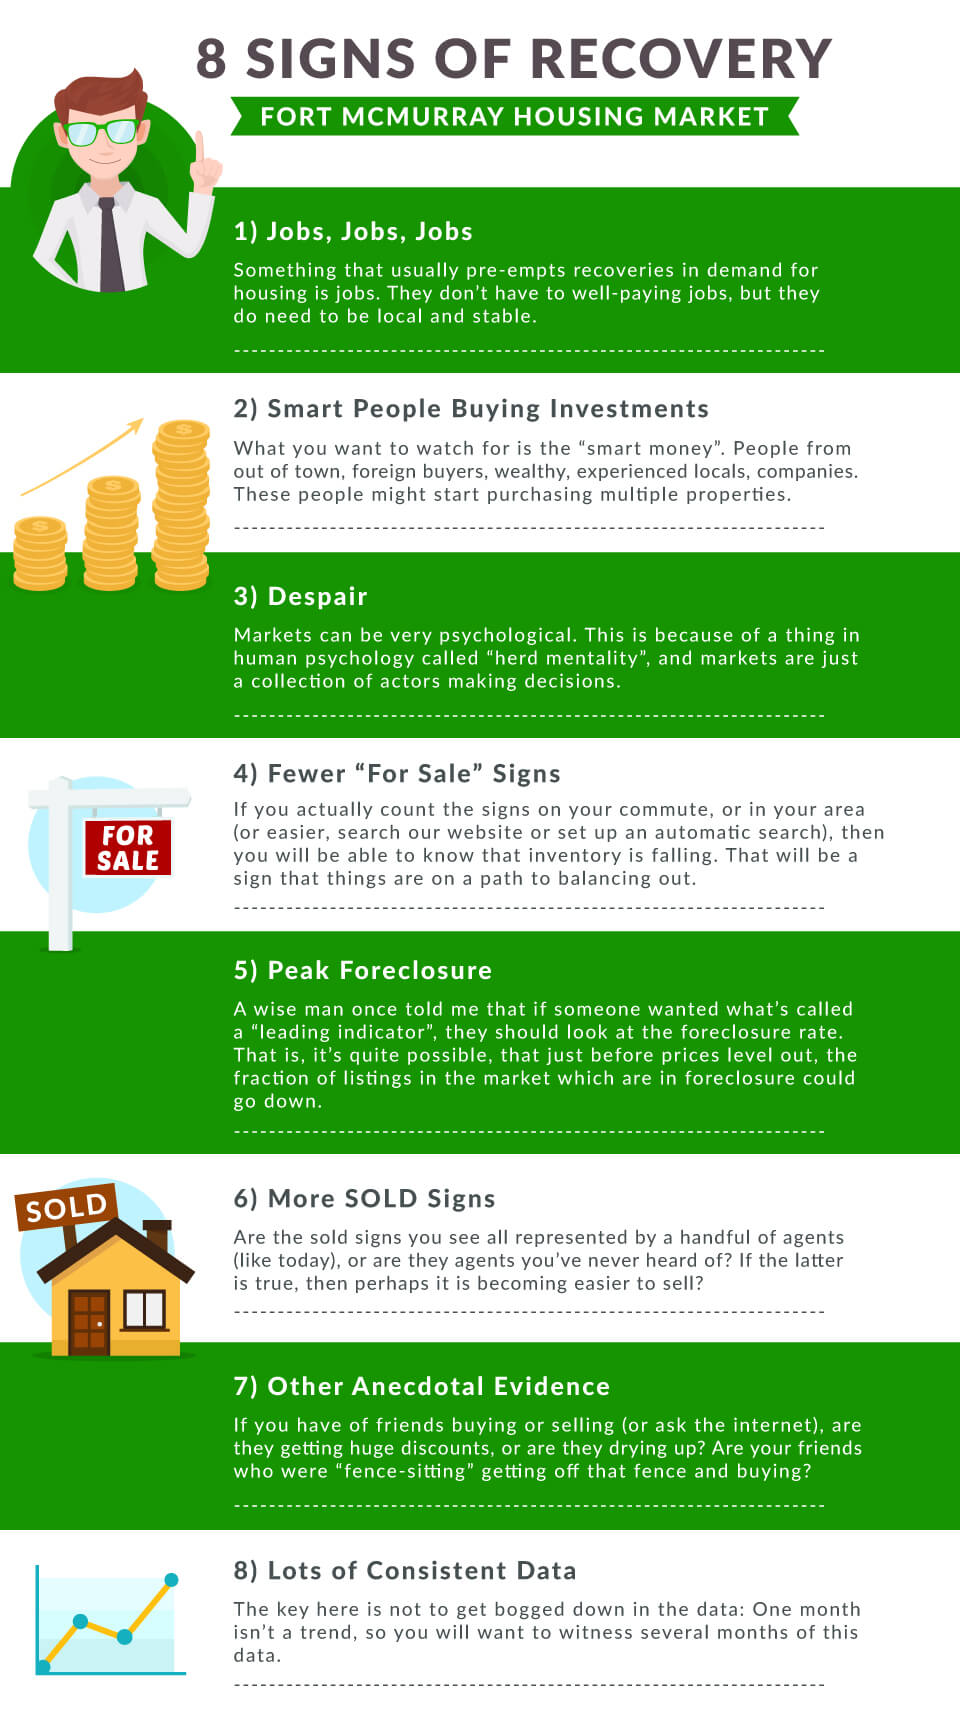 infographic revealing eight signs of fort mcmurray housing market recovery